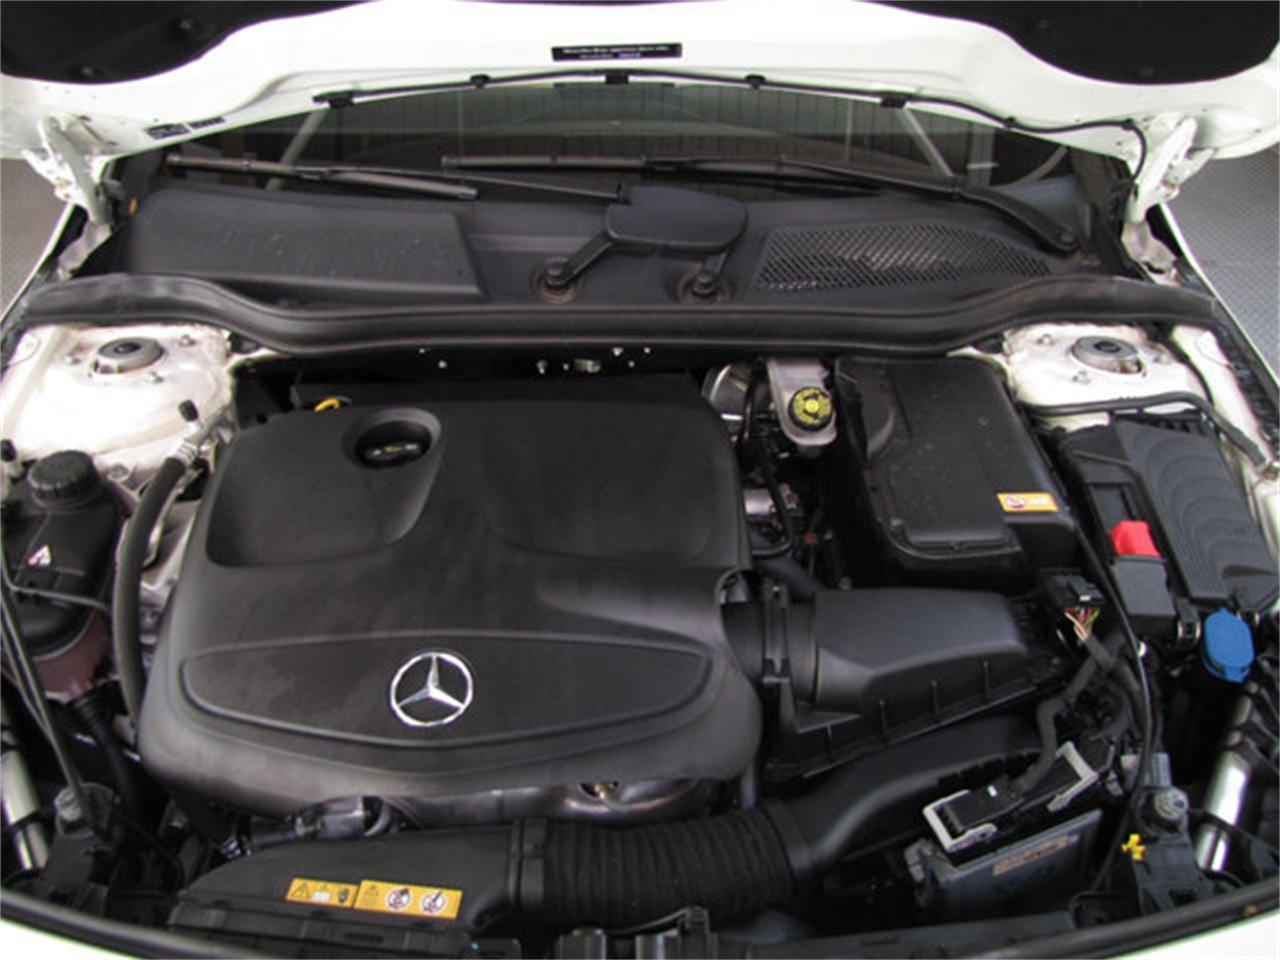 2015 Mercedes-Benz CLA (CC-1152319) for sale in Hollywood, California